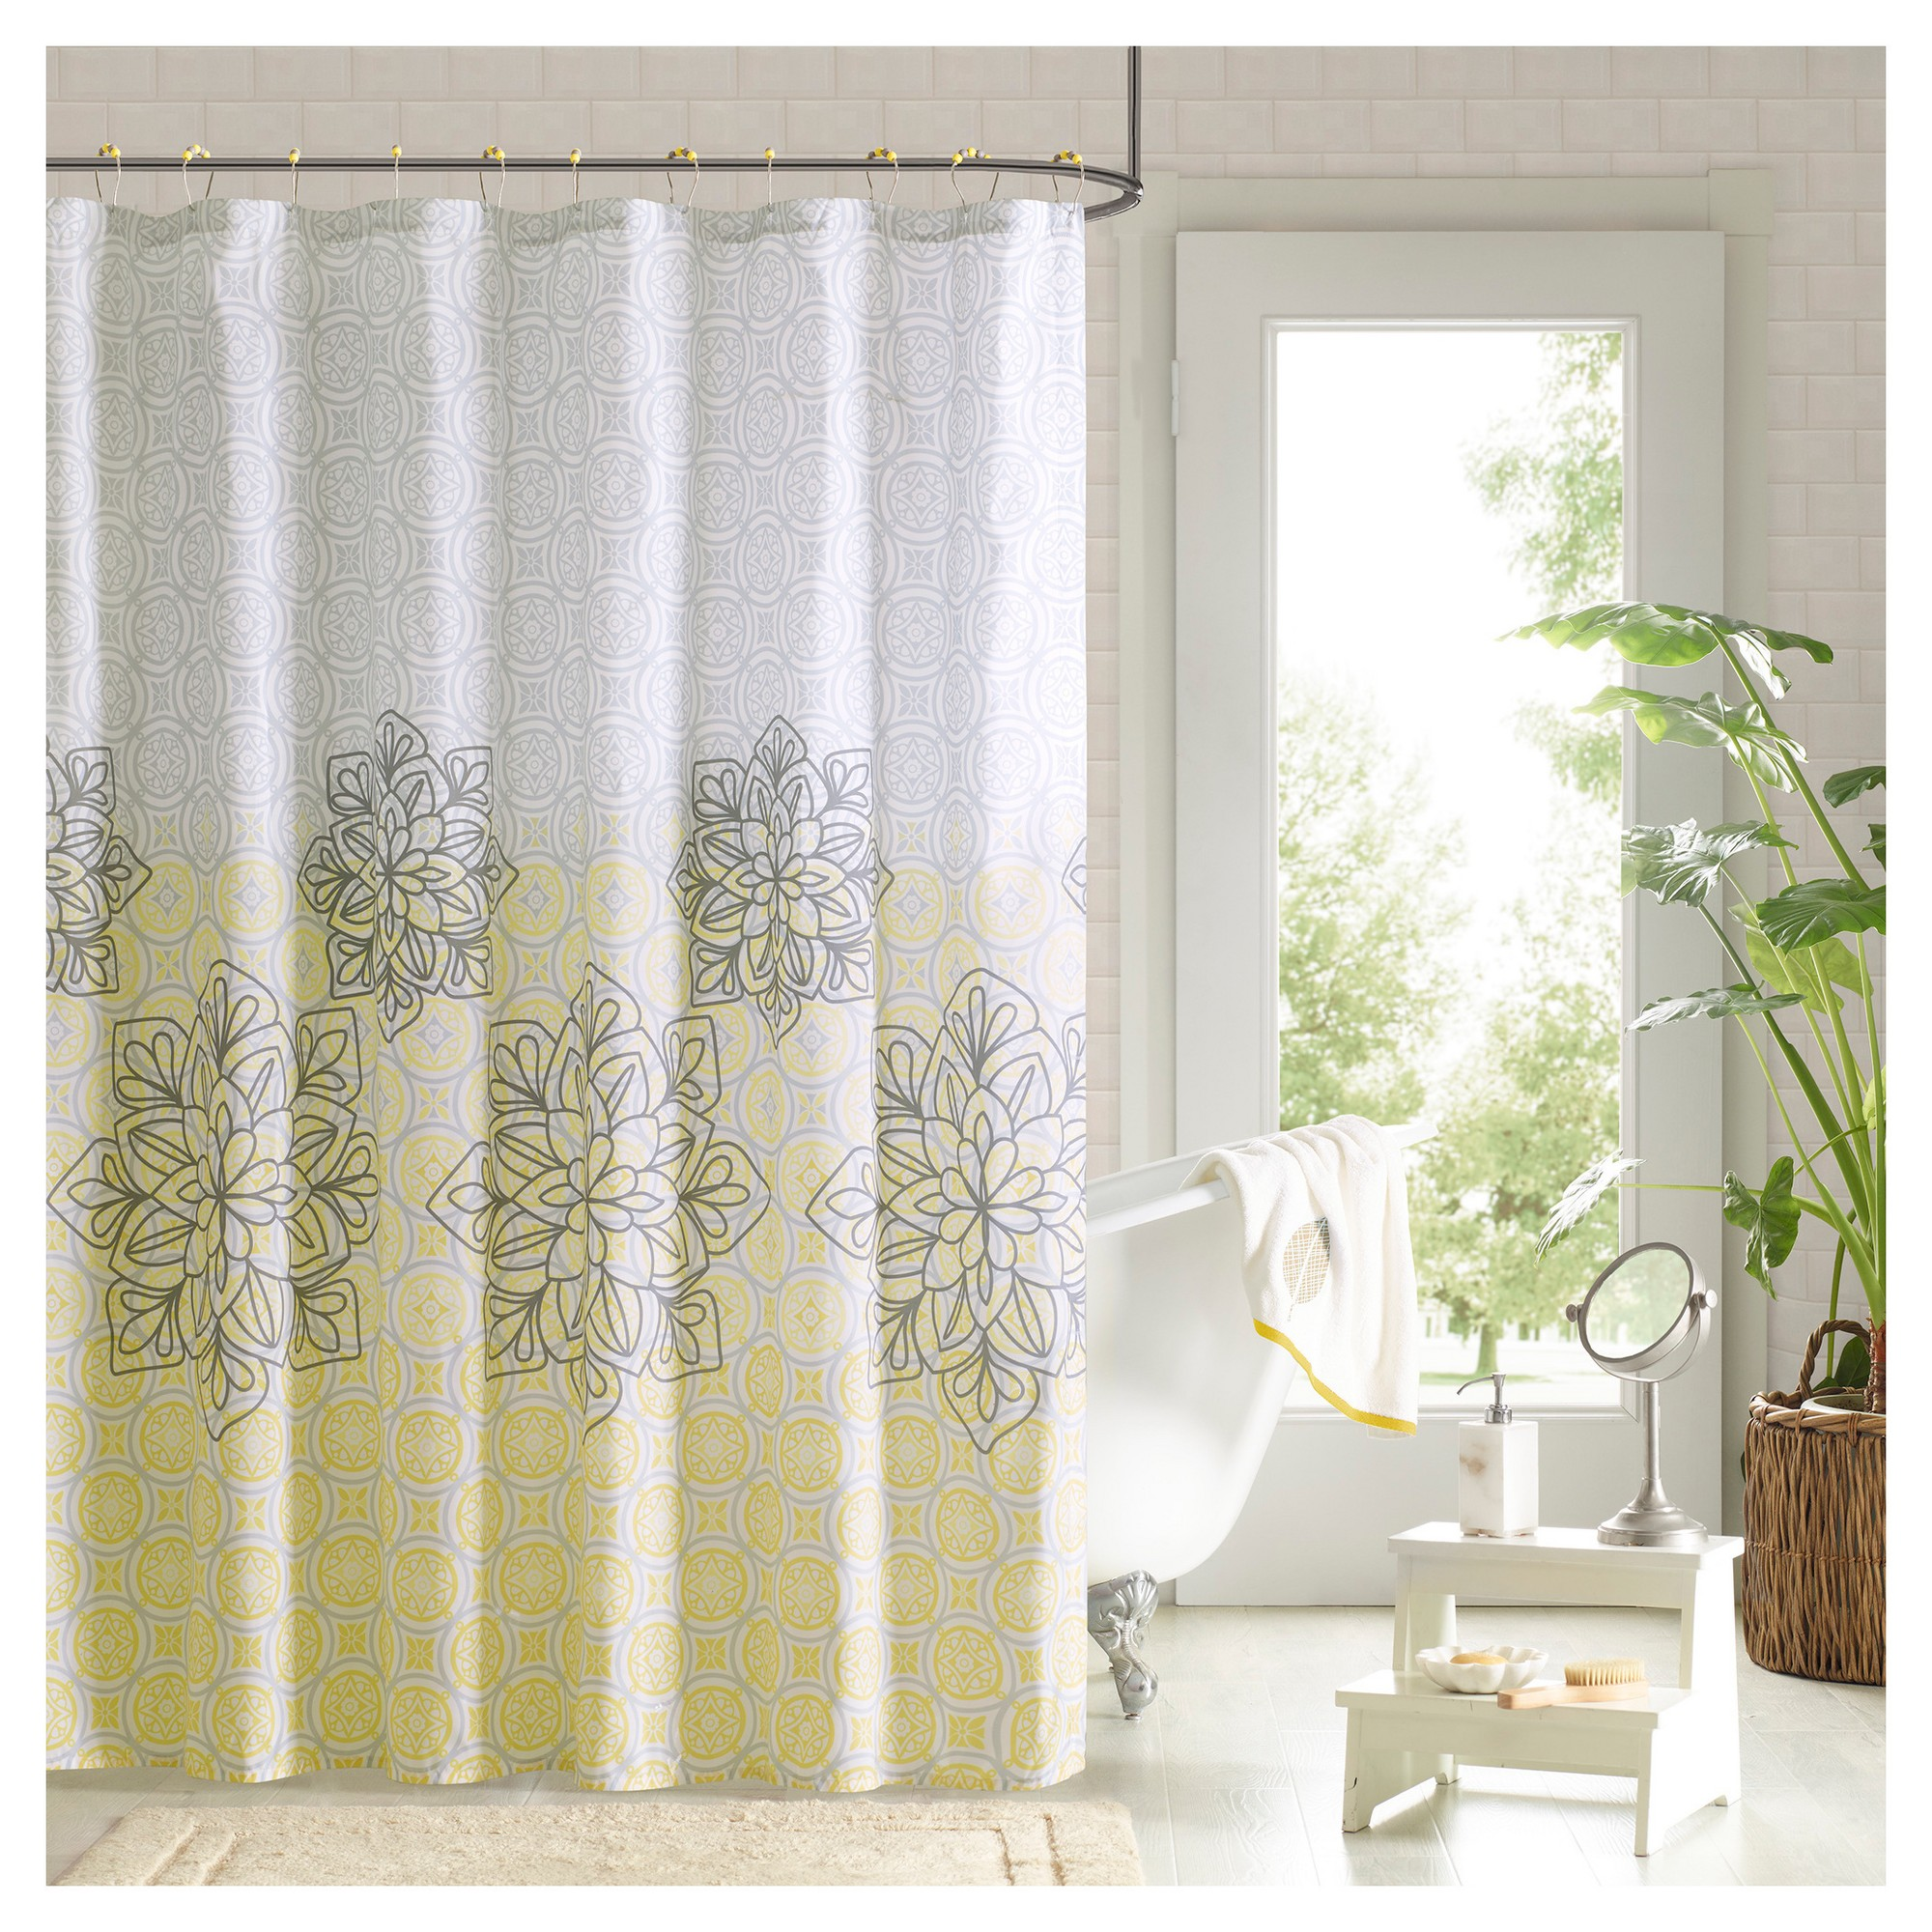 Shower Curtain And Hook Set